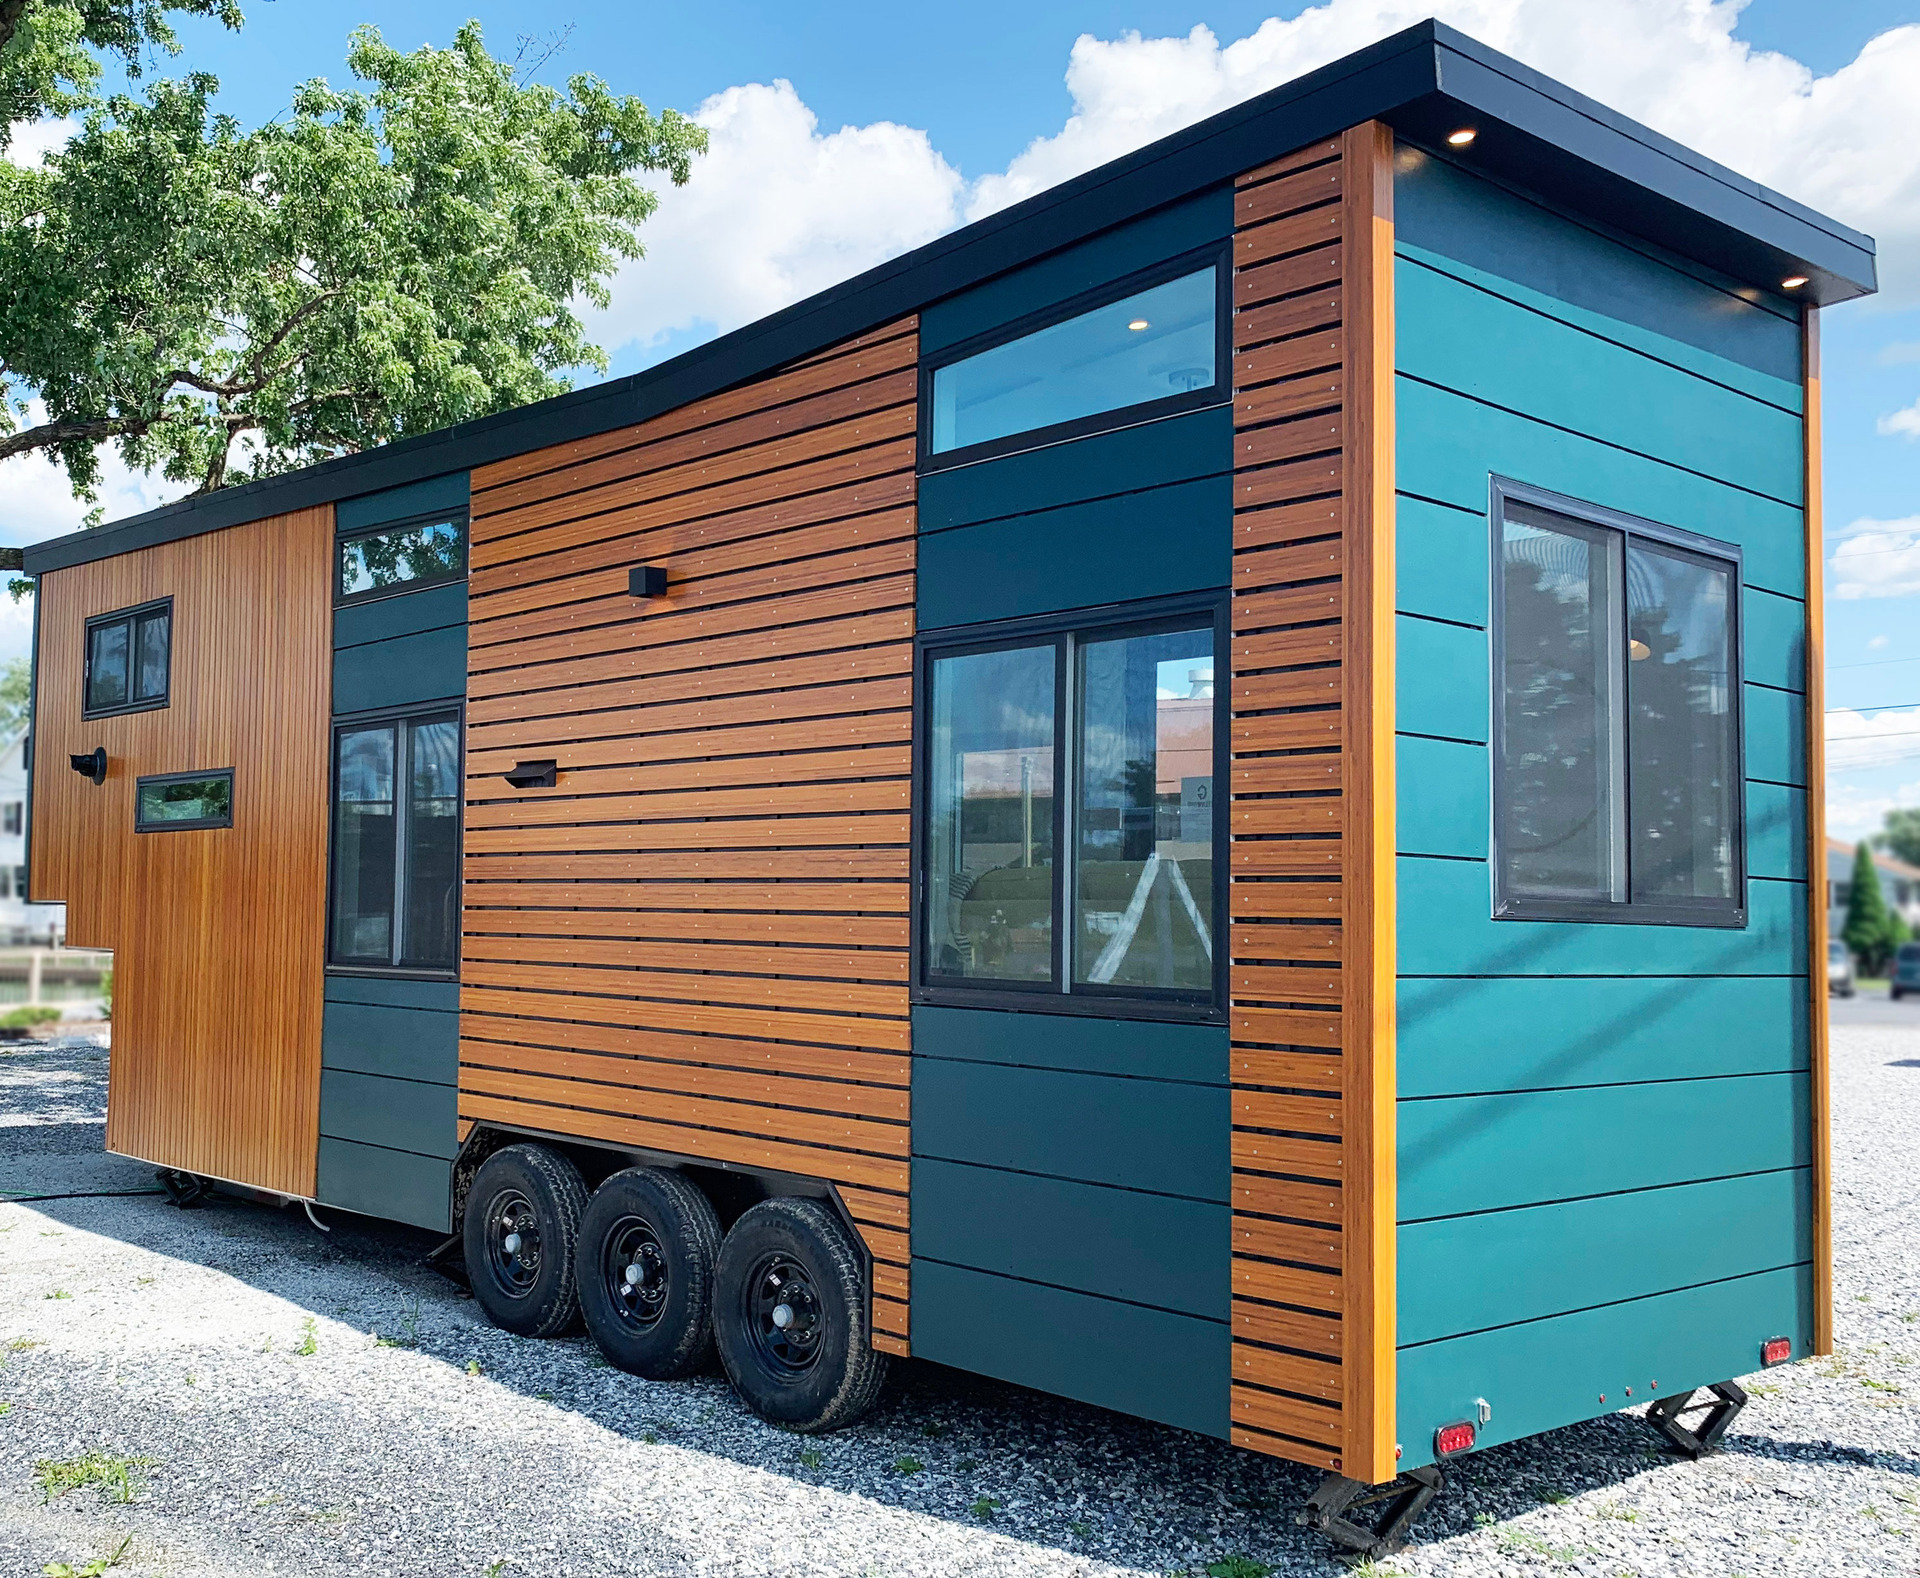 Lamboo® Elements™ - Exterior Components are featured throughout the exterior of the Greenwood Tiny Home.